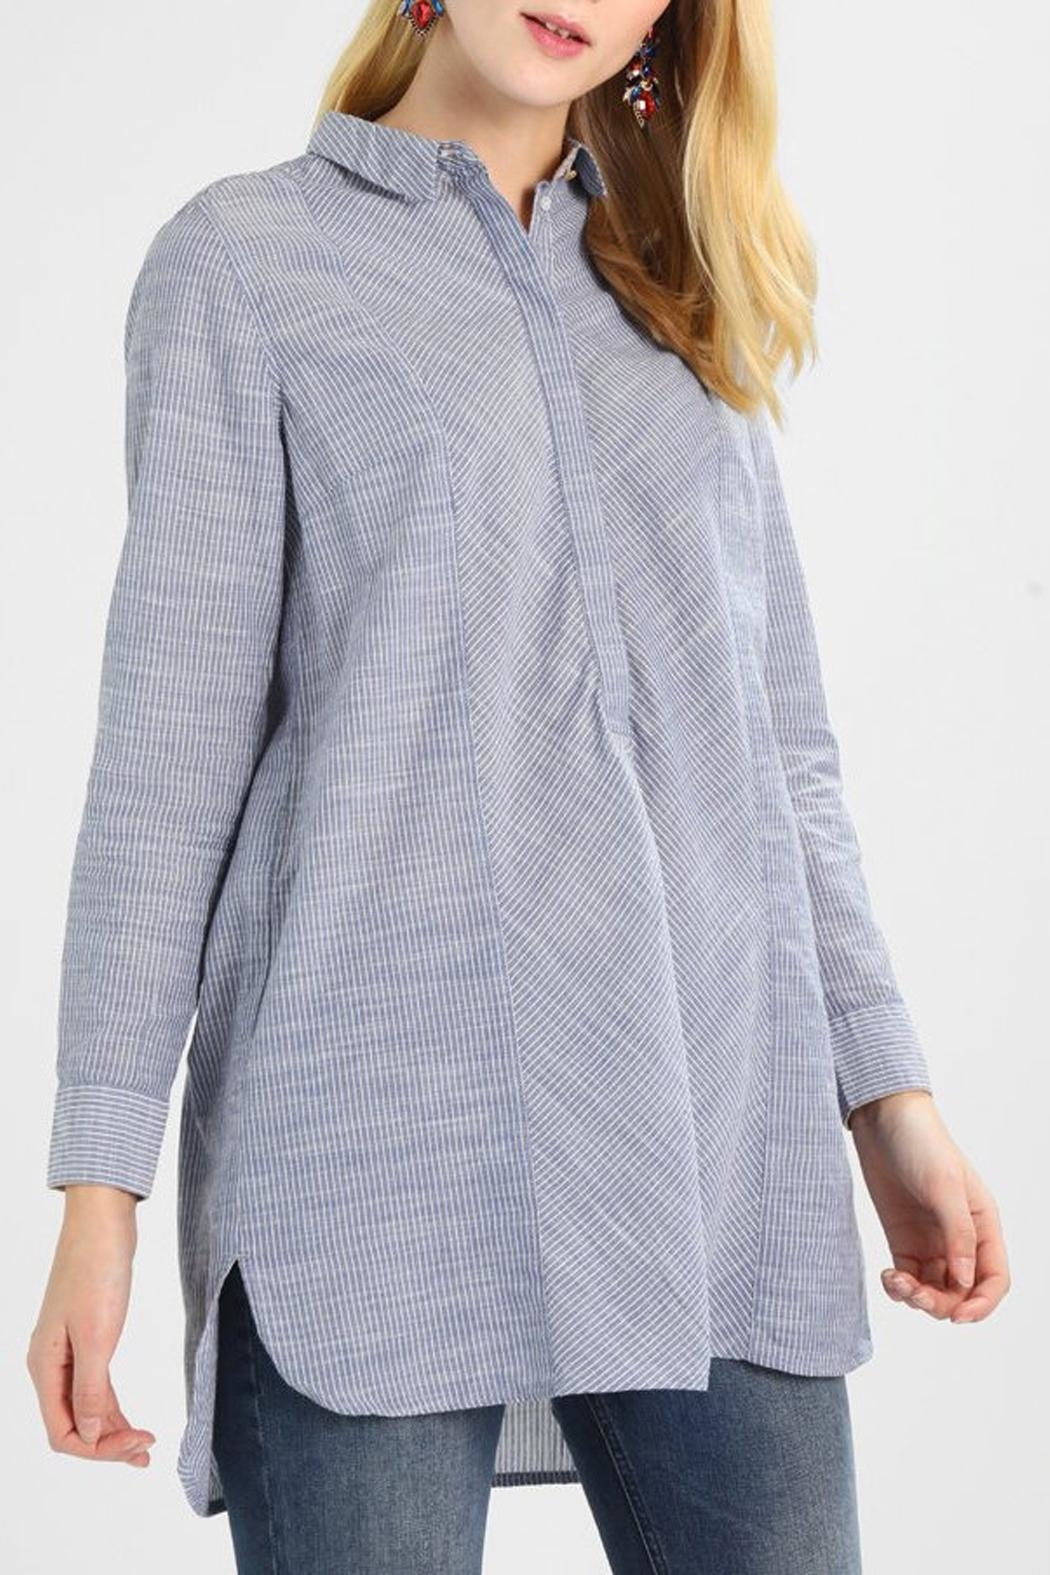 Noa Noa Striped Long Blouse - Front Cropped Image